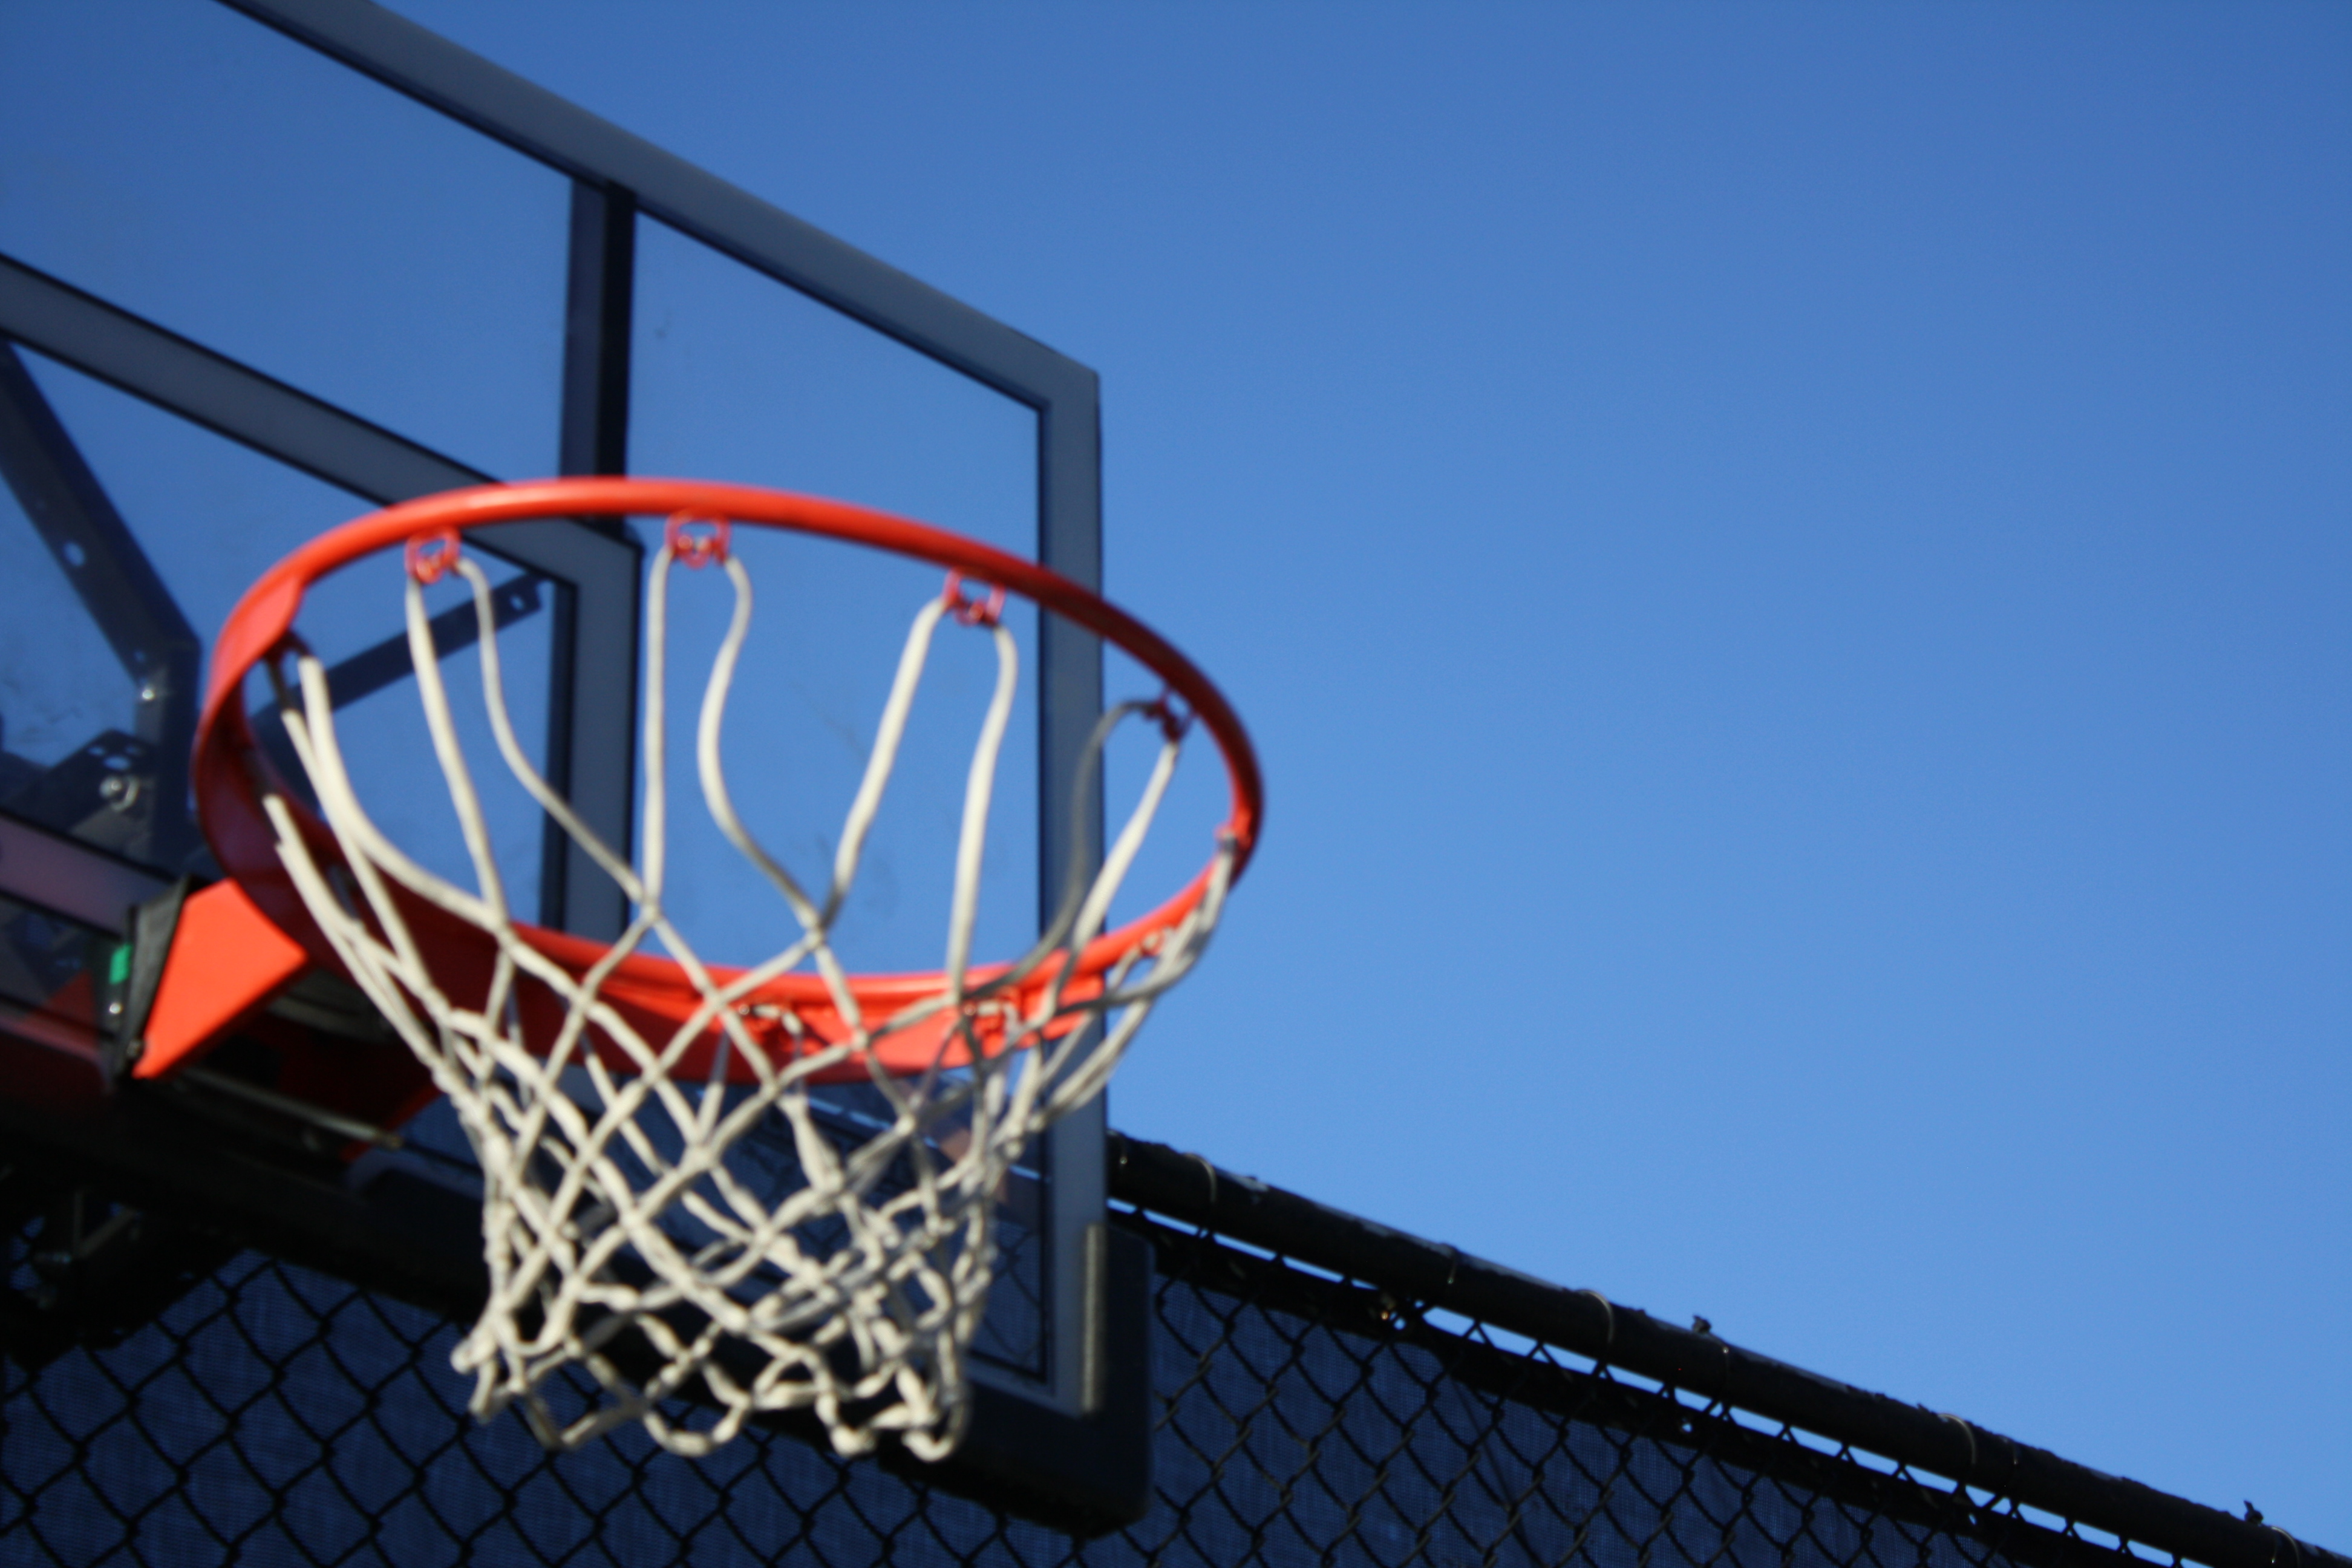 Blue And Brown Basketball Hoop 183 Free Stock Photo